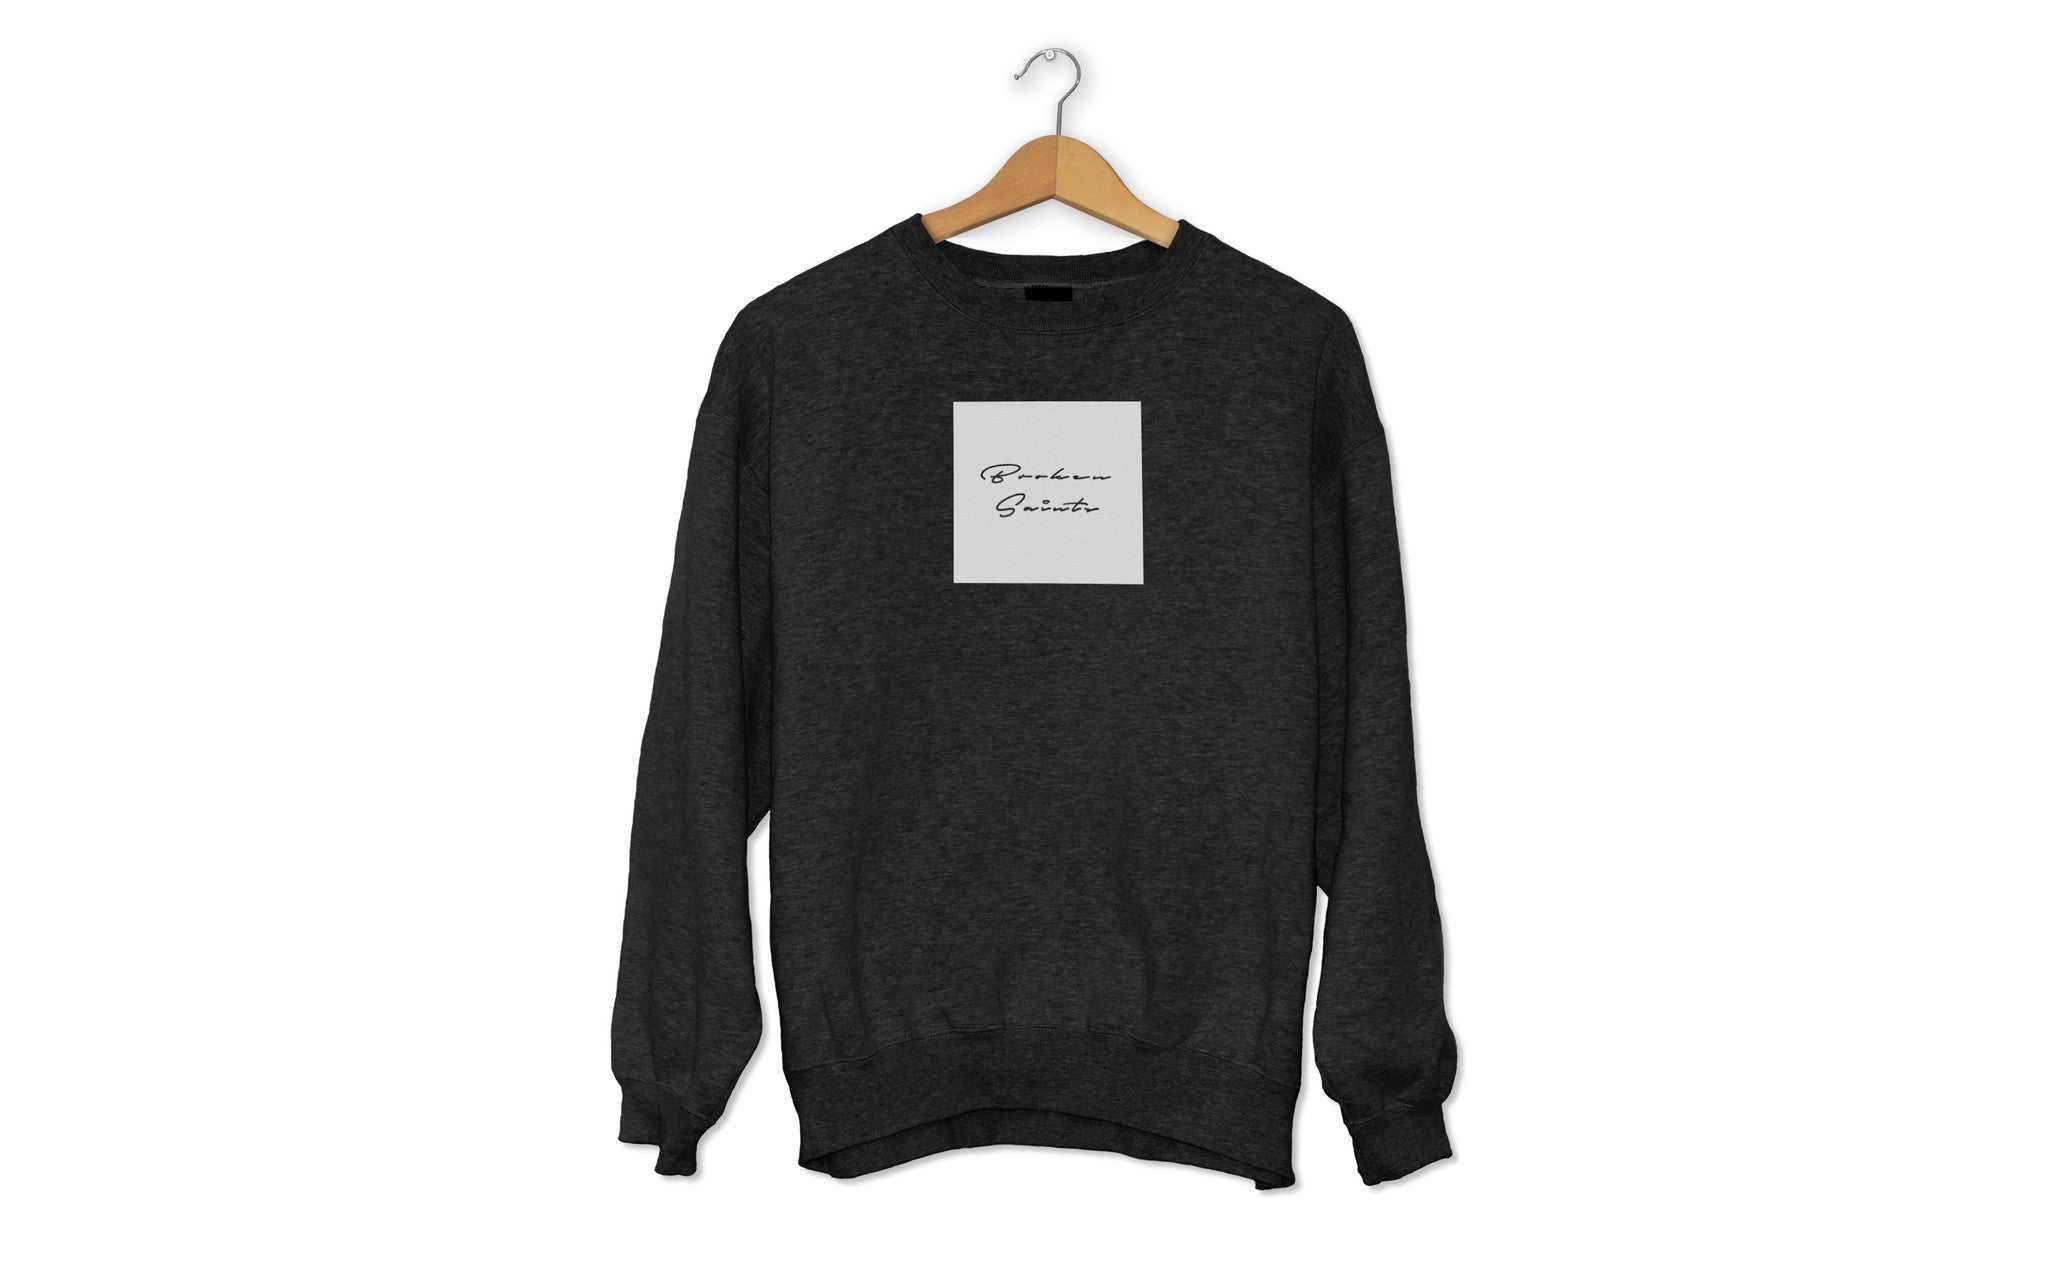 Broken Saints Signature Box Crewneck Sweaters